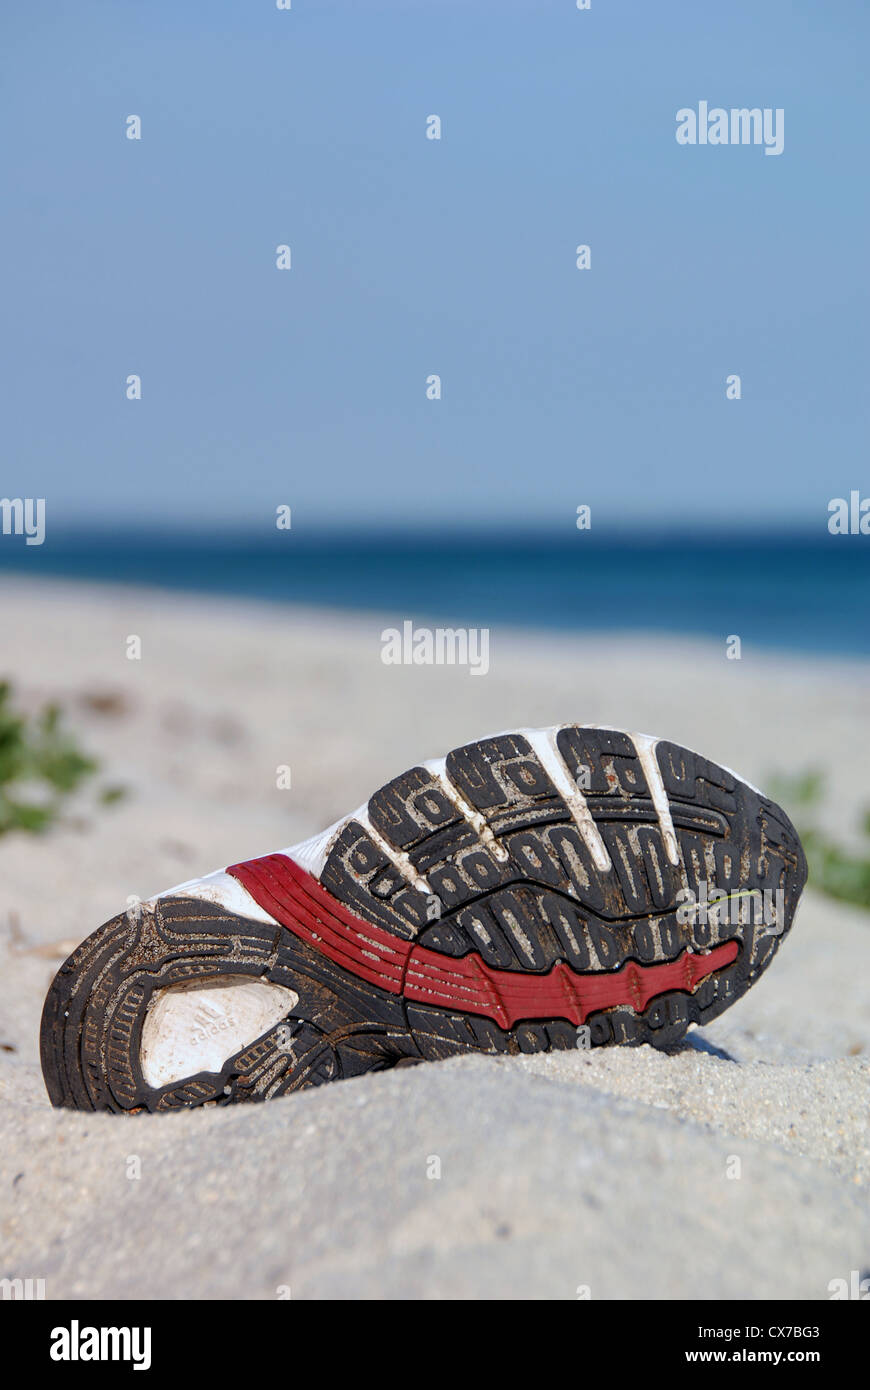 Shoe left on a beach - Stock Image